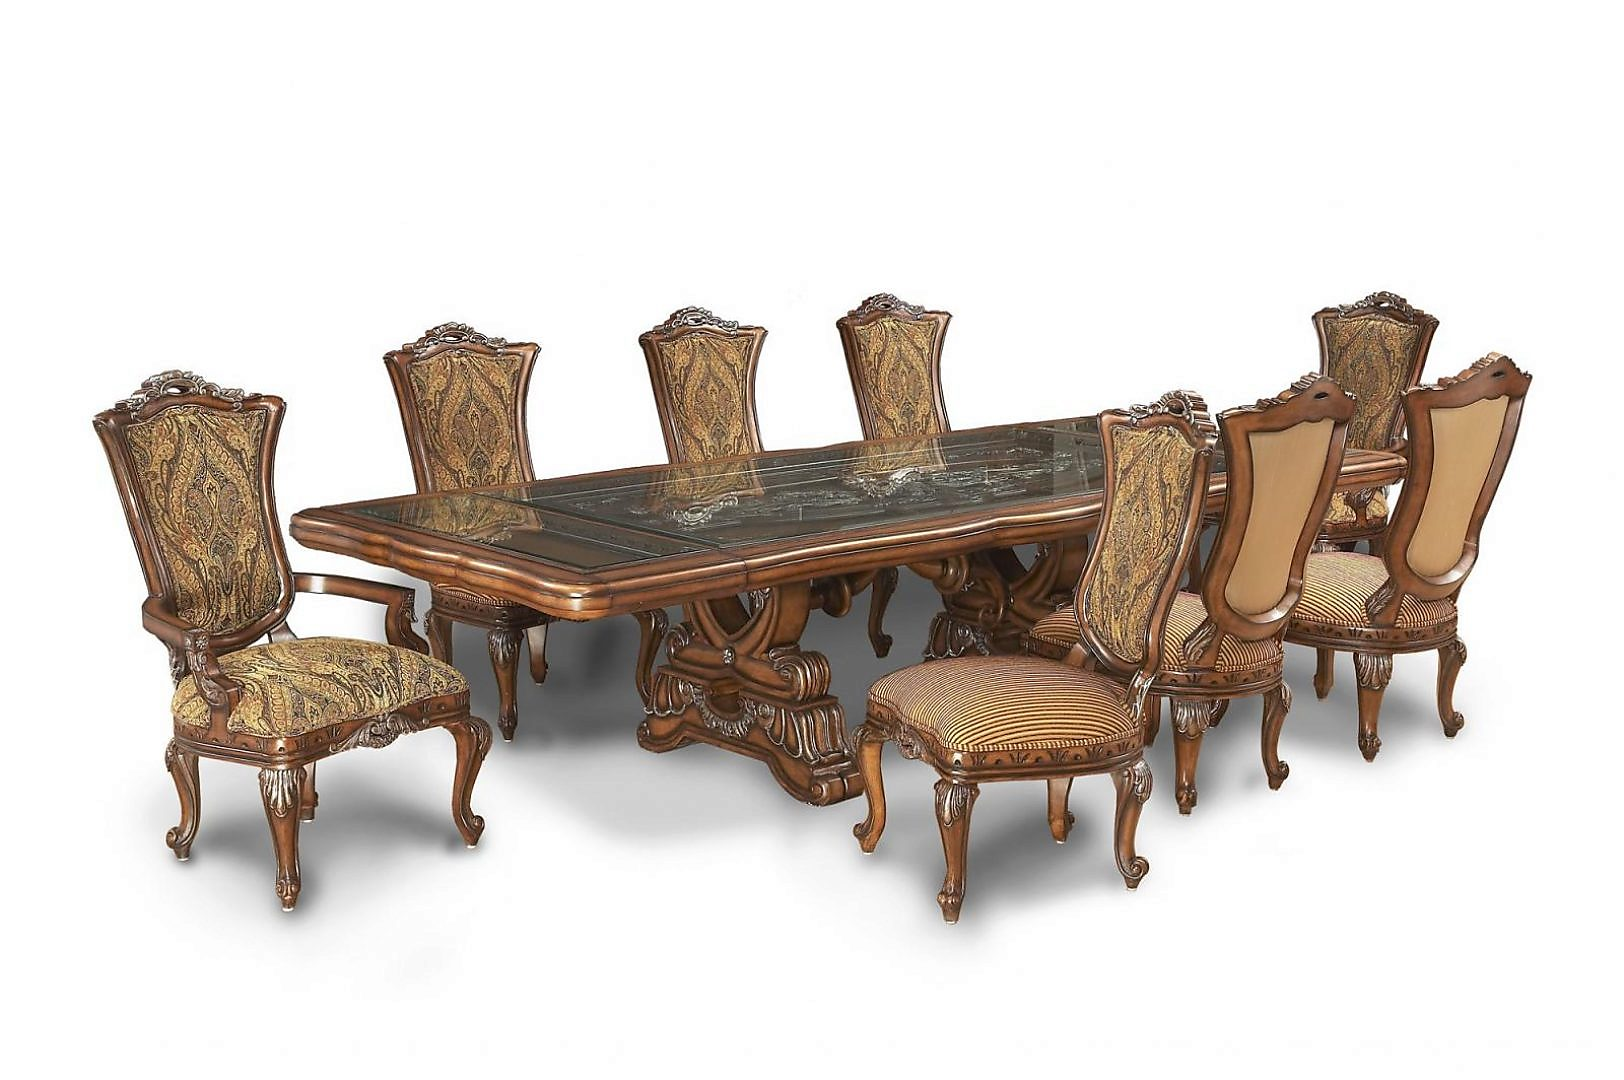 Bennetti Luxury Walnut Dining Room Set 9P Table w/Extension Firenza Table Side Chairs 2 Arm Chairs Classic Traditional